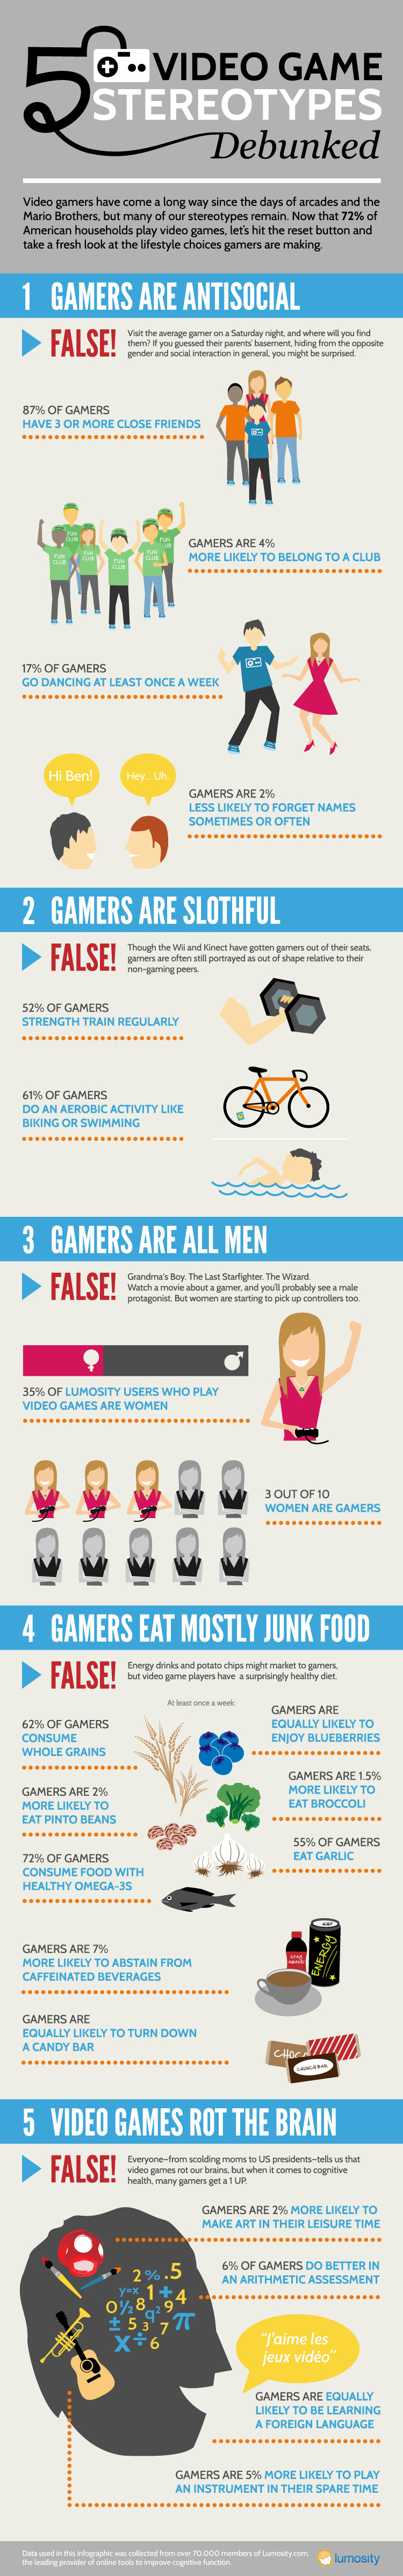 5 Video Game Stereotypes Debunked